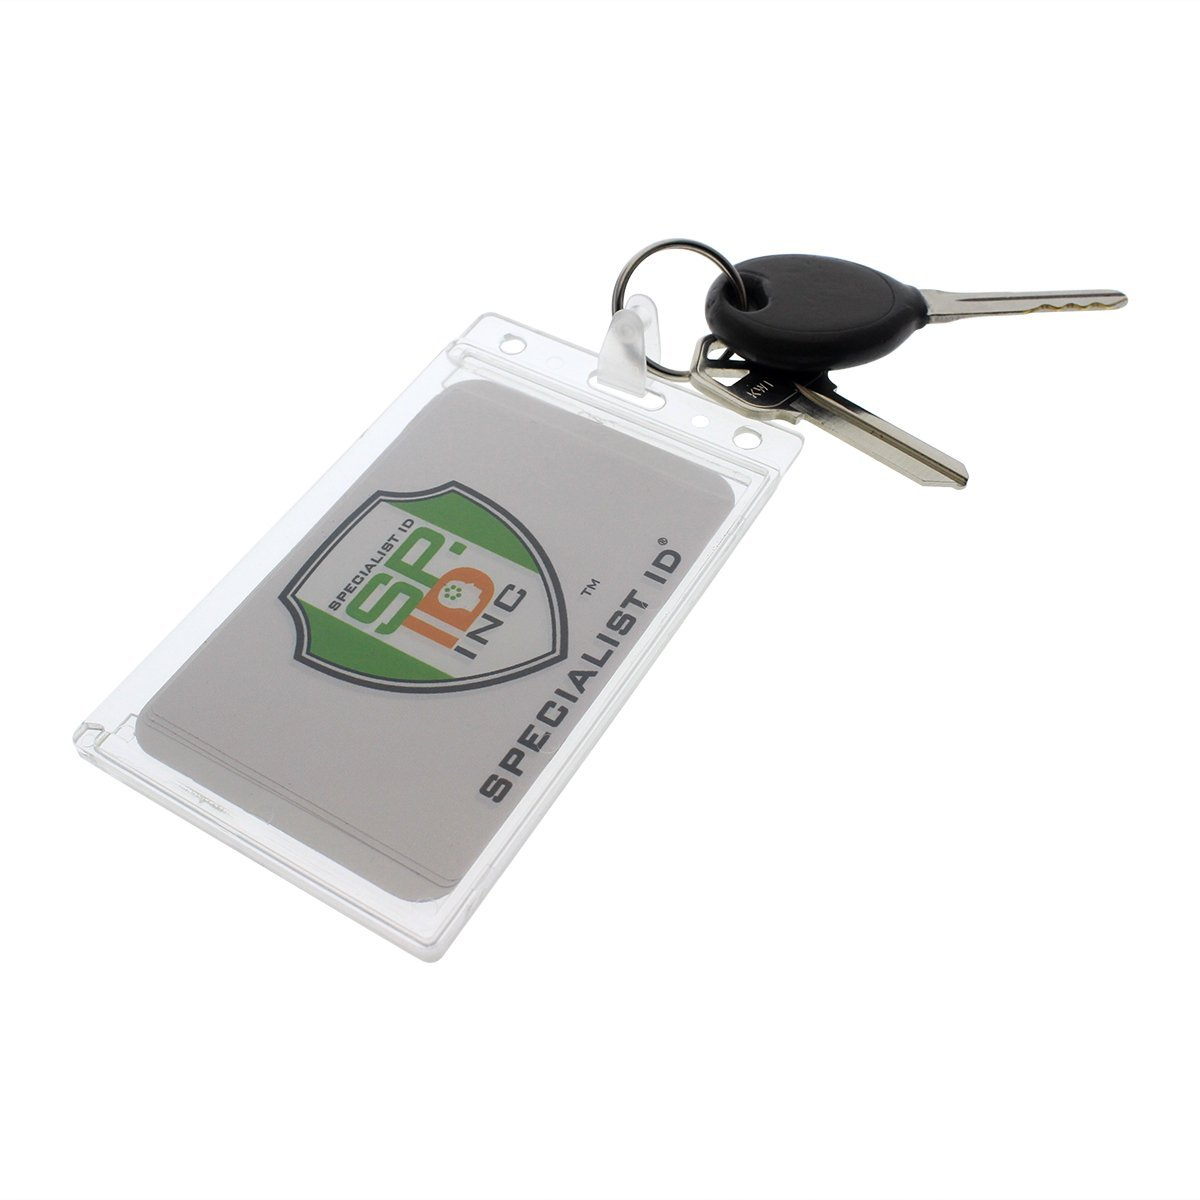 Fuel card holder key chain gas card key ring id keychain by fuel card holder key chain gas card key ring id keychain by specialist id reheart Gallery